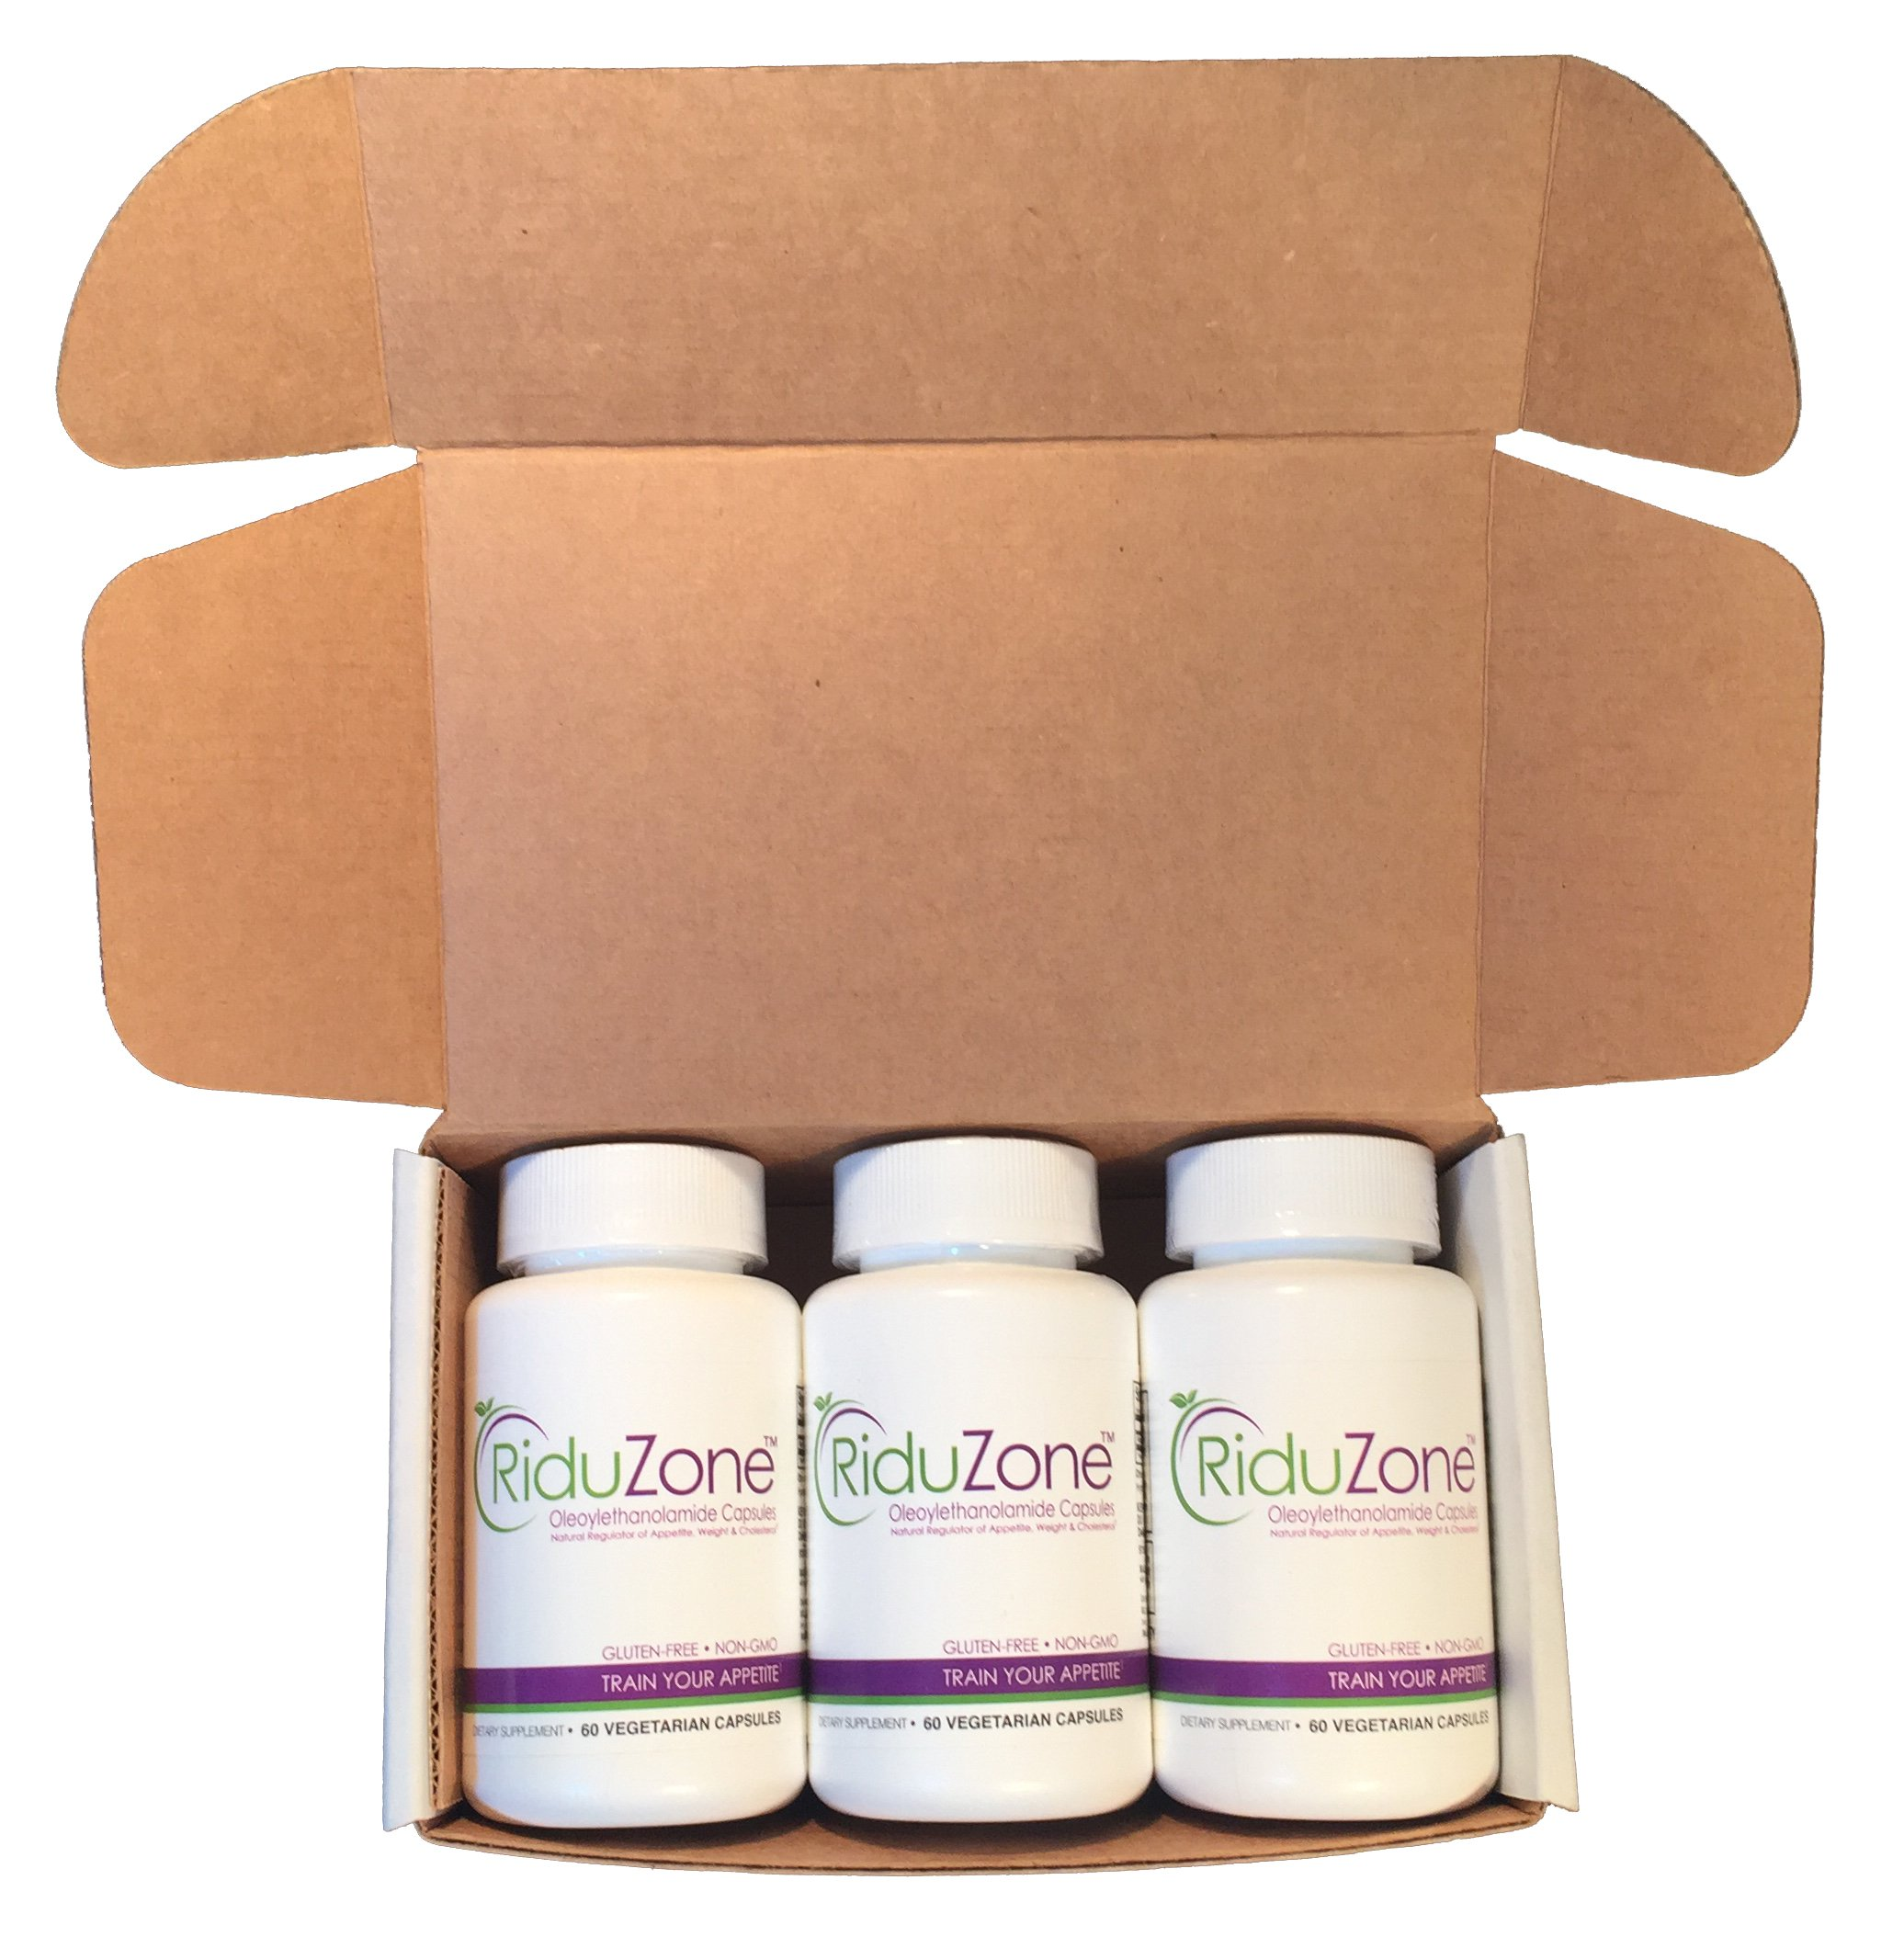 RiduZone (OEA/Oleoylethanolamide) Supplement For Healthy Weight Loss - 1 Bottle